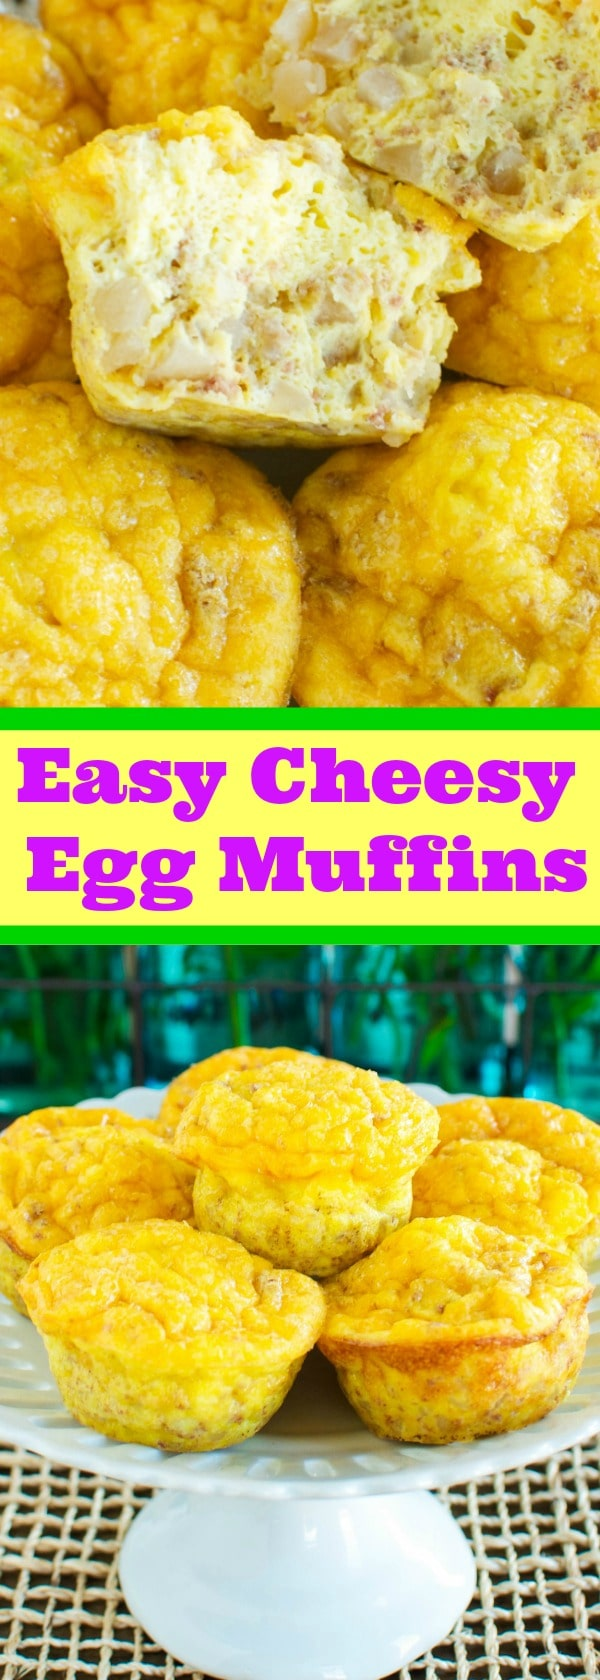 Easy Cheesy Egg Muffin Scrambles -  A hearty, protein rich breakfast you can make ahead and store in the freezer! #Promotion